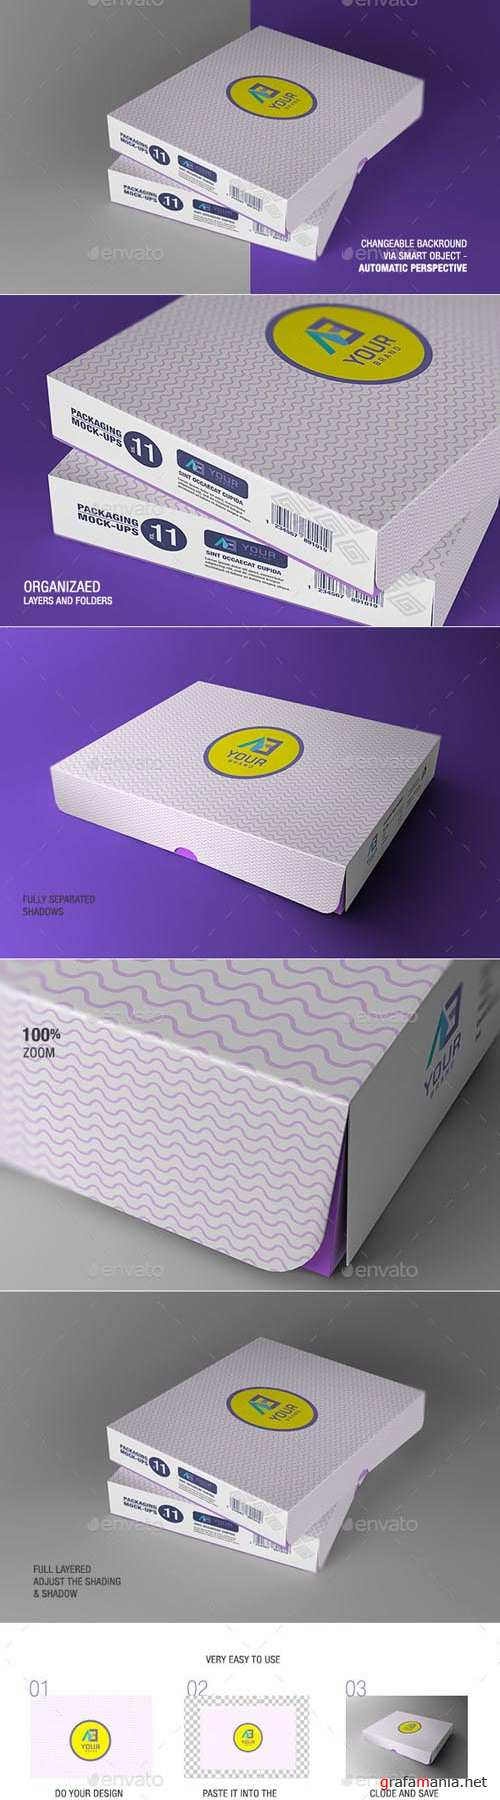 Packaging Mock-ups 11 9295230